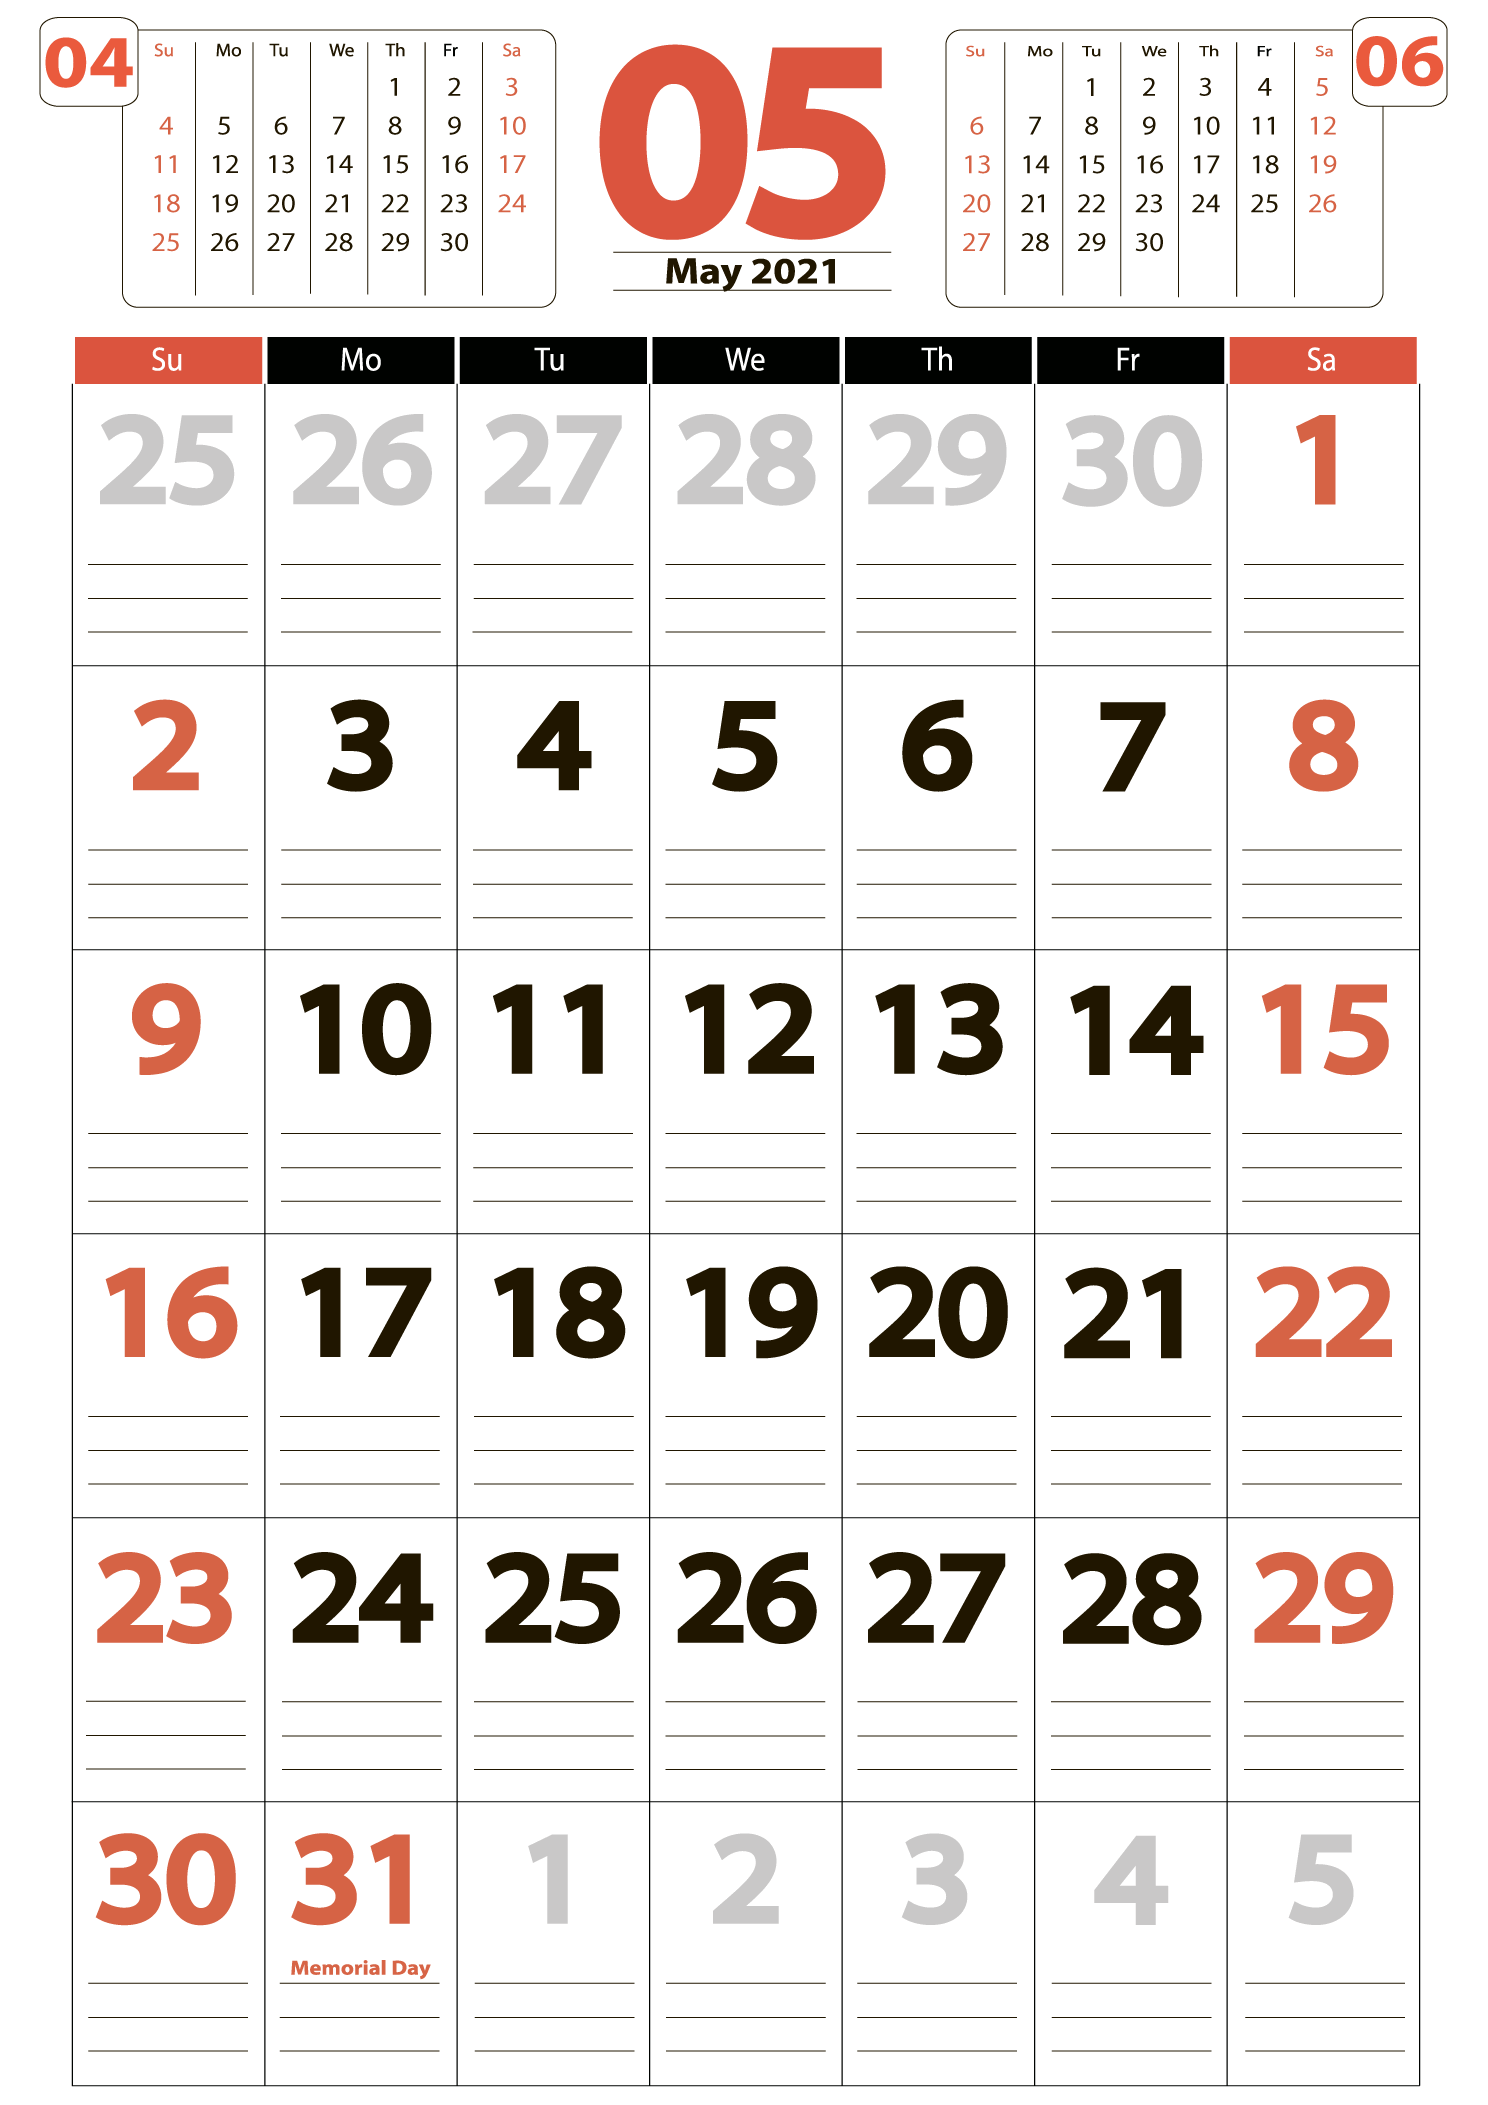 Download calendar 05 2021